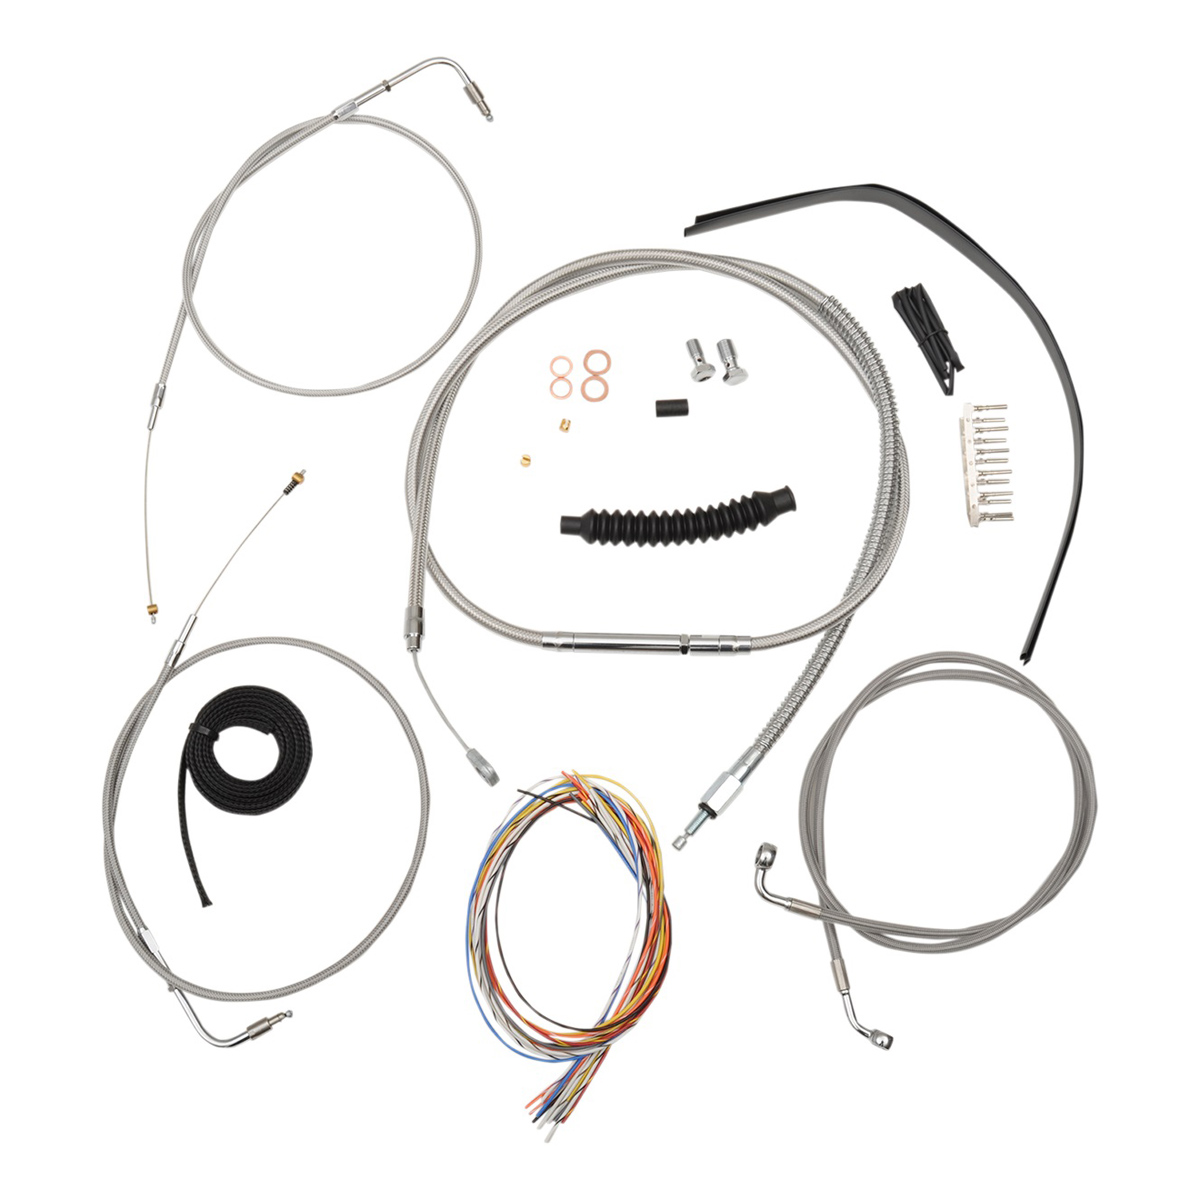 LA Choppers Stainless Complete Cable/Line/Wiring Handlebar Kit for 18″-20″ Bars on Models without ABS